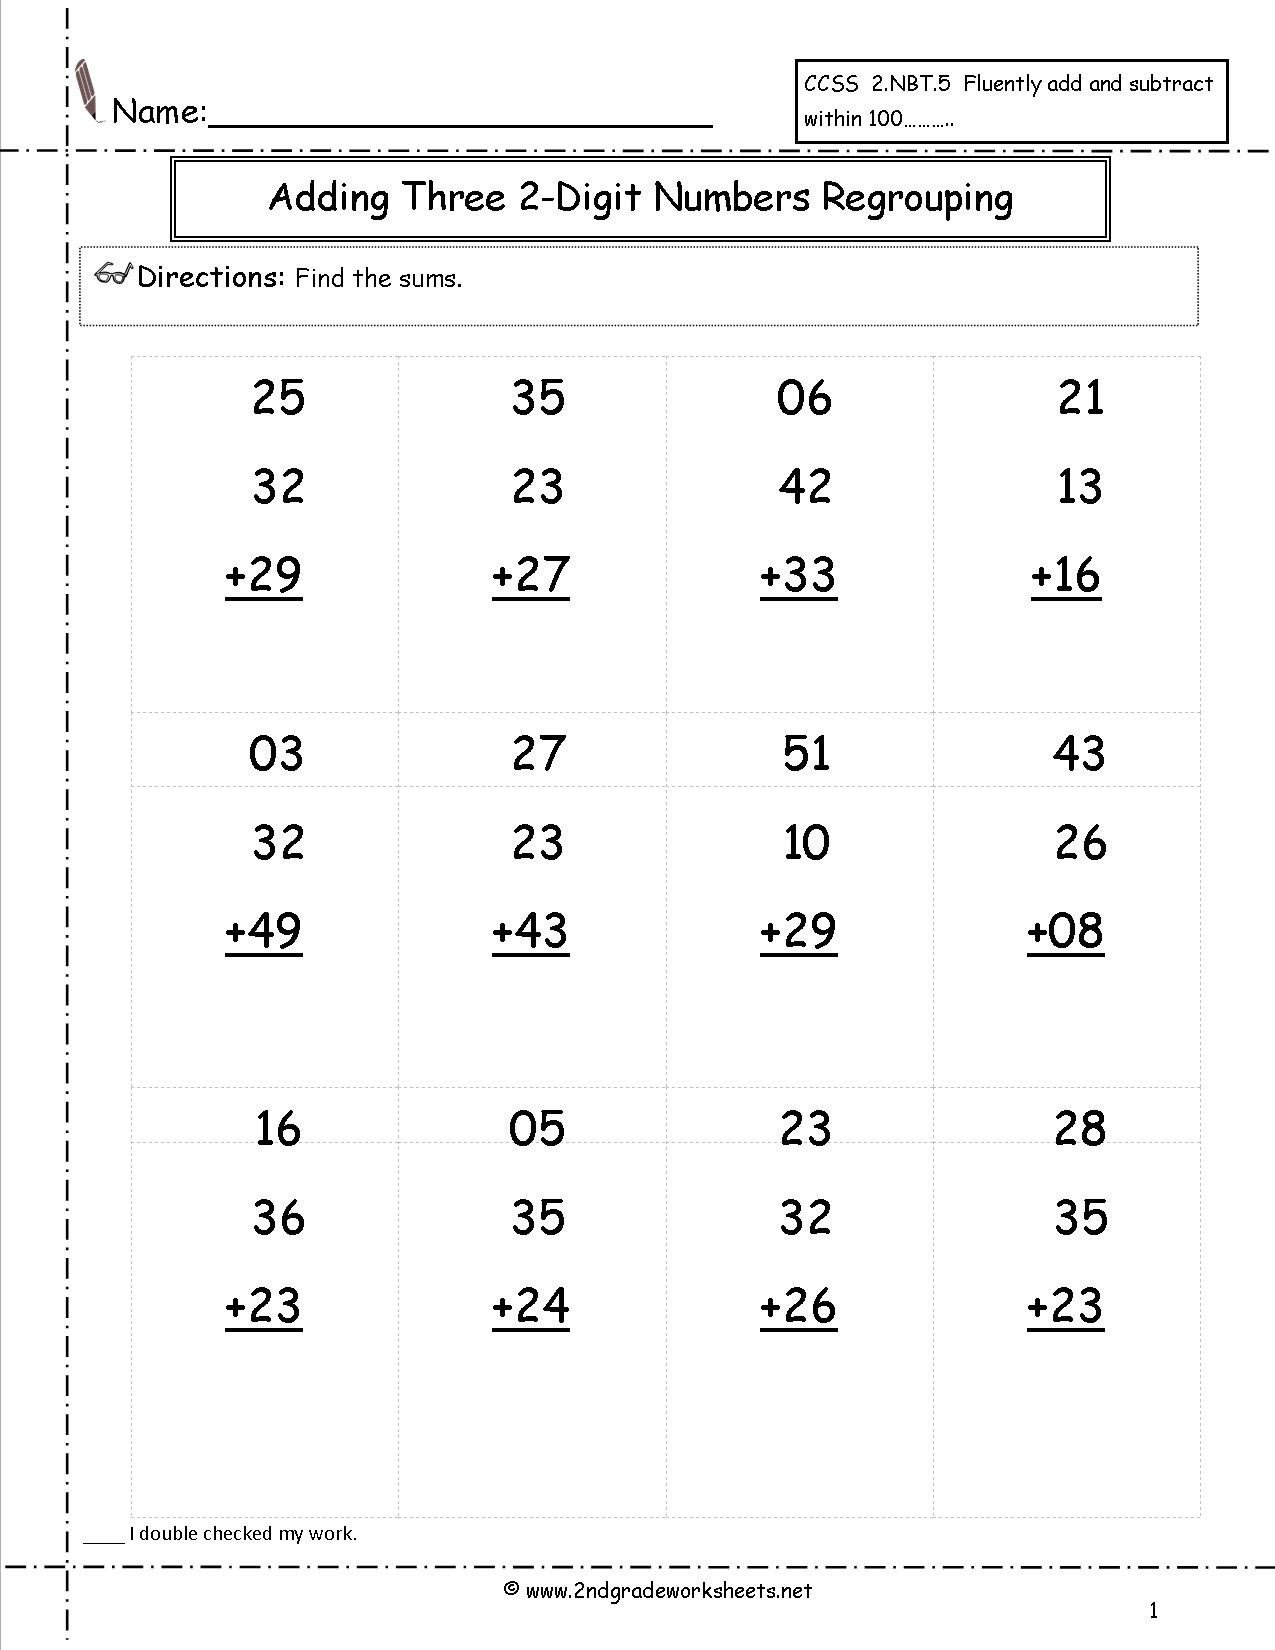 free math worksheets second grade 2 subtraction subtract 2 digit numbers missing numbers no regrouping of free math worksheets second grade 2 subtraction subtract 2 digit numbers missing num